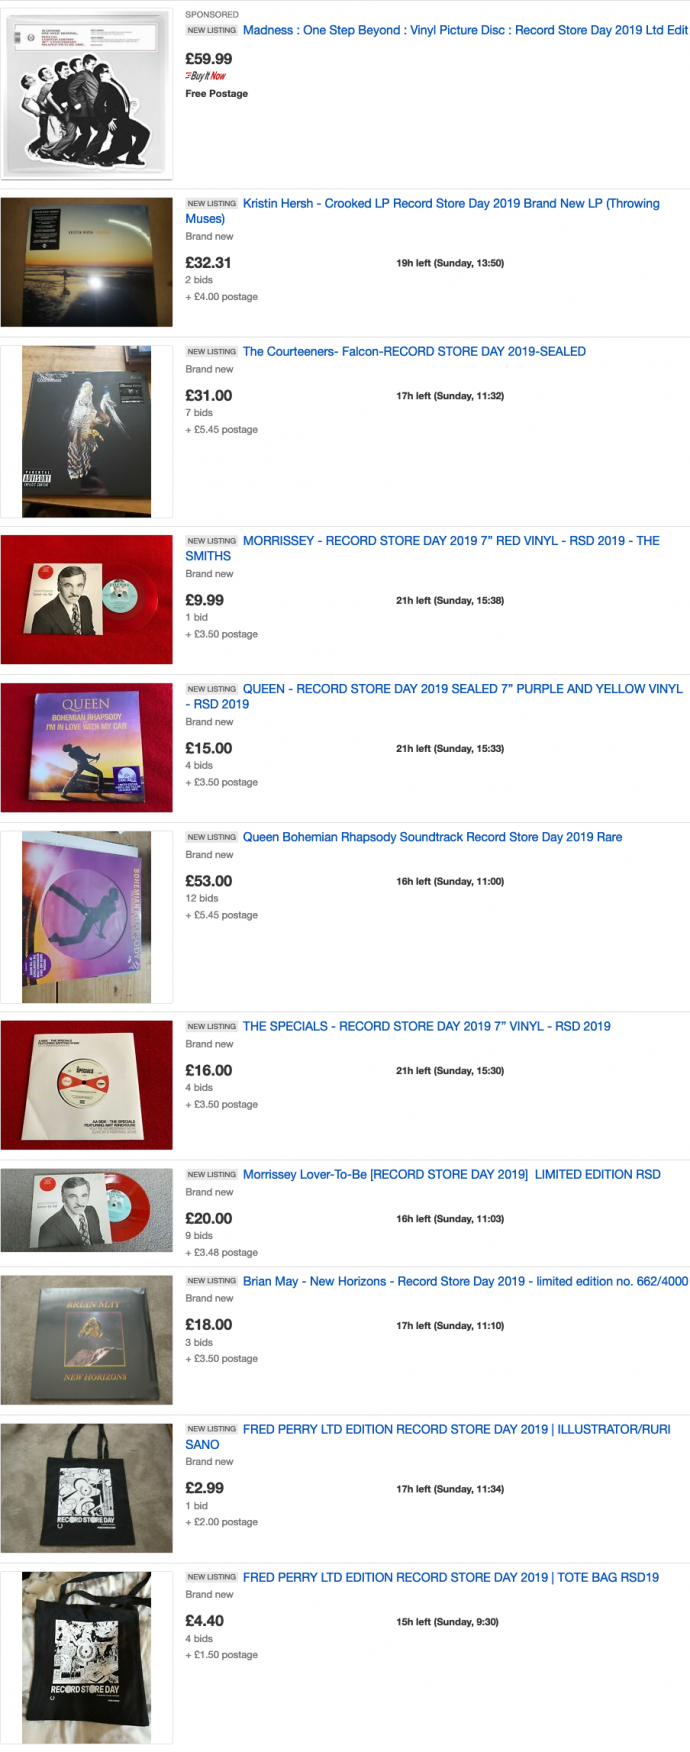 List of items for Record Store Day on ebay